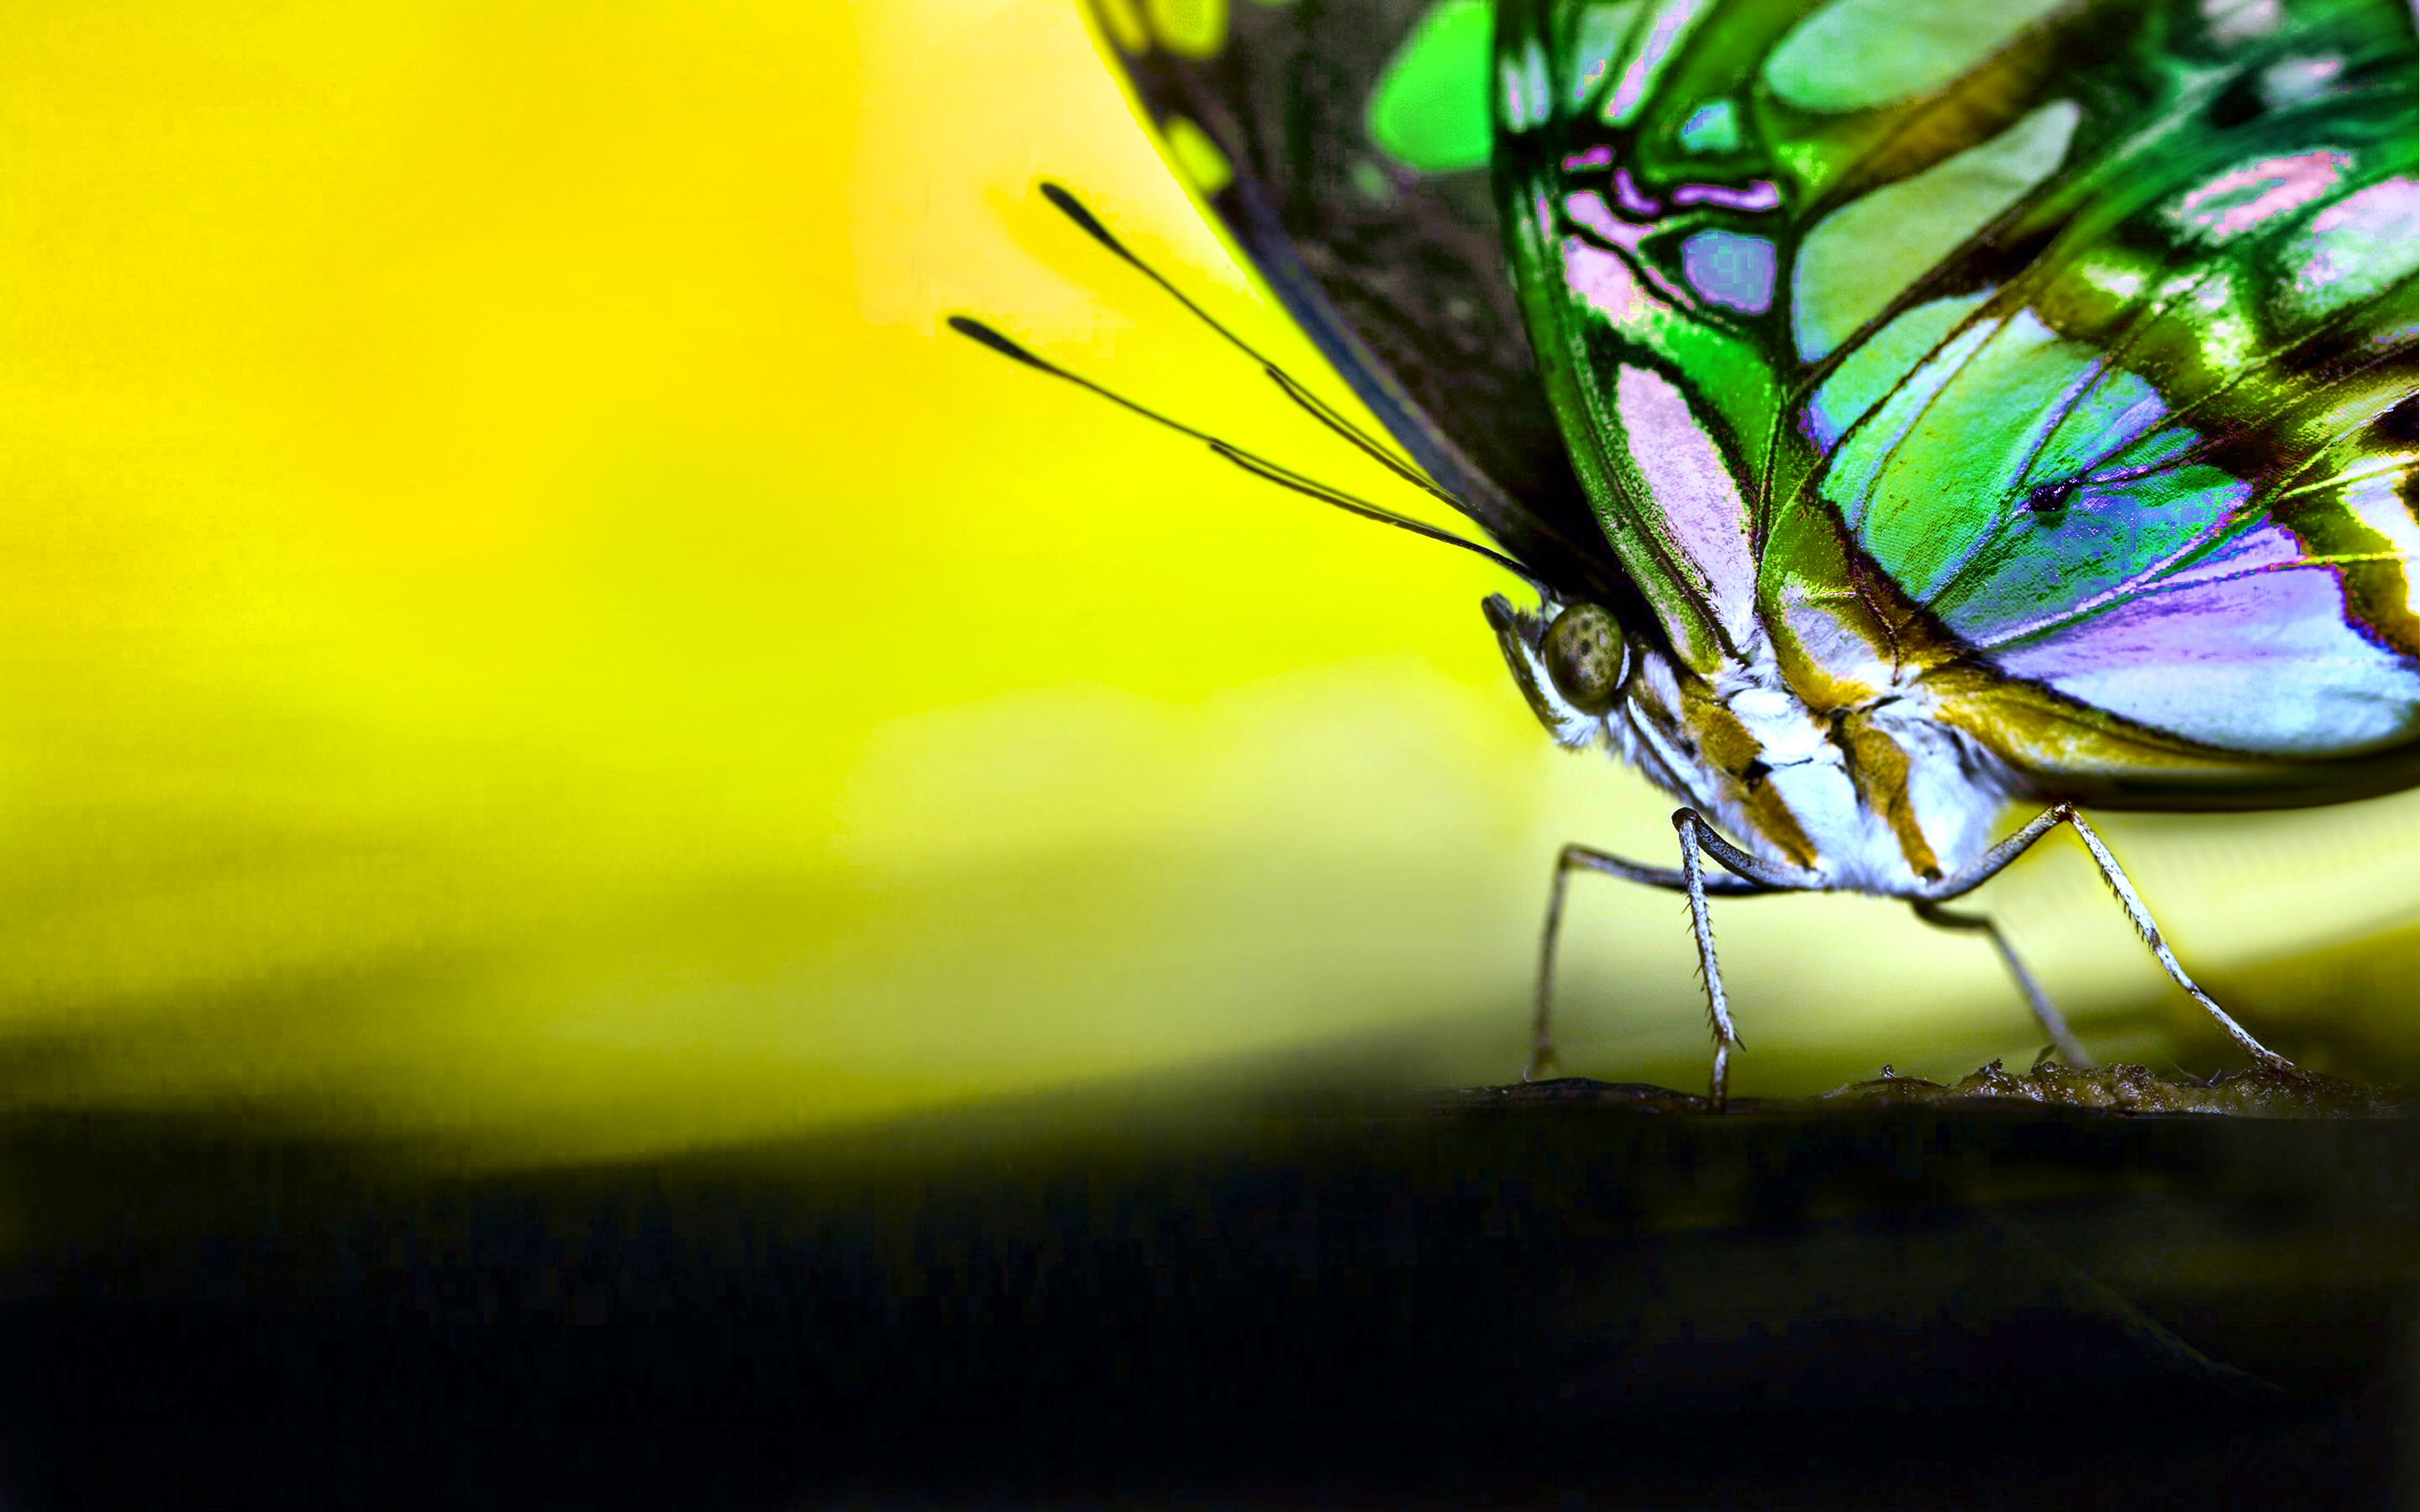 BUTTERFLY [02] colors of nature [19may2013sunday] [204537 ...